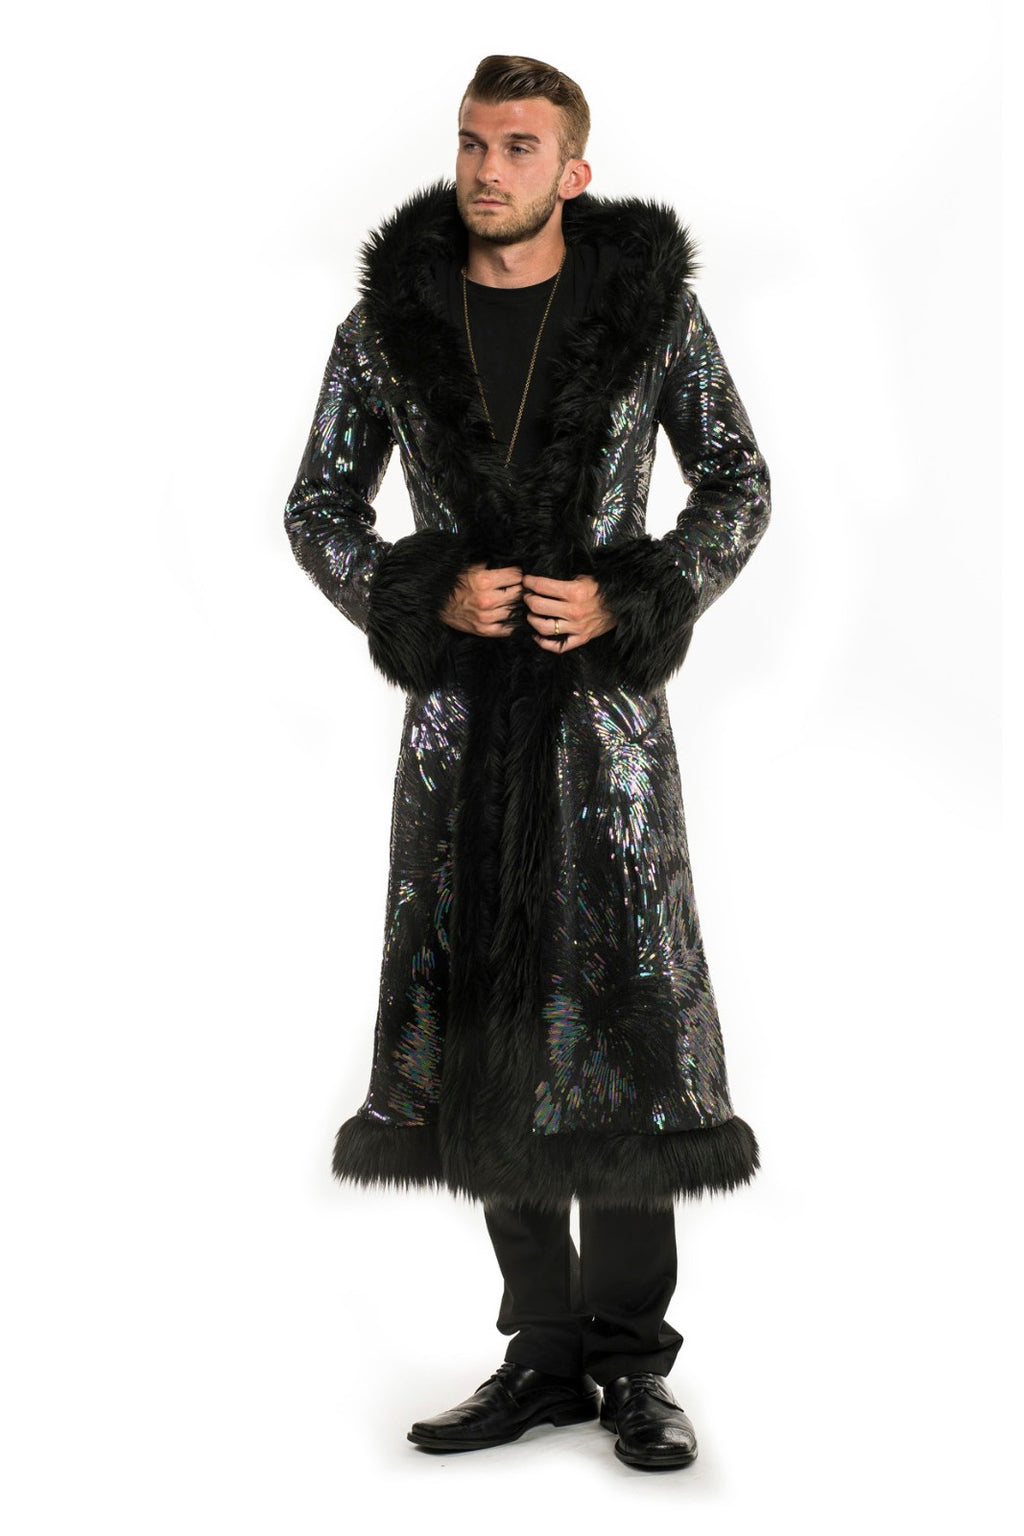 Deluxe Baron Coat: Super Nova Seqiun + Black Faux Fur Trim